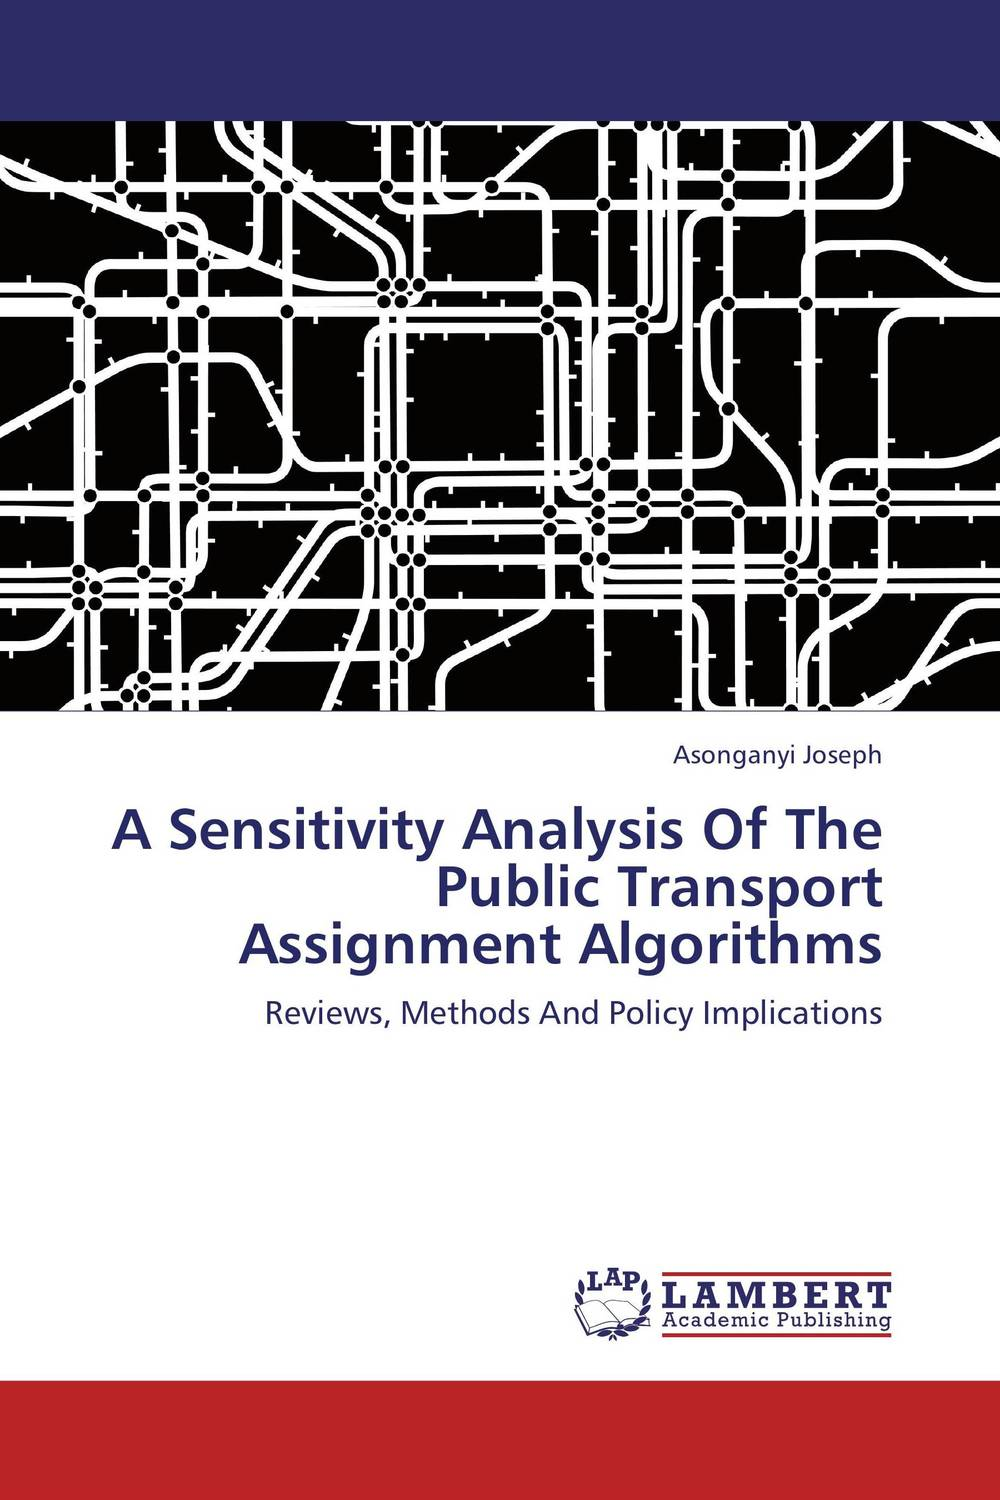 A Sensitivity Analysis Of The Public Transport Assignment Algorithms